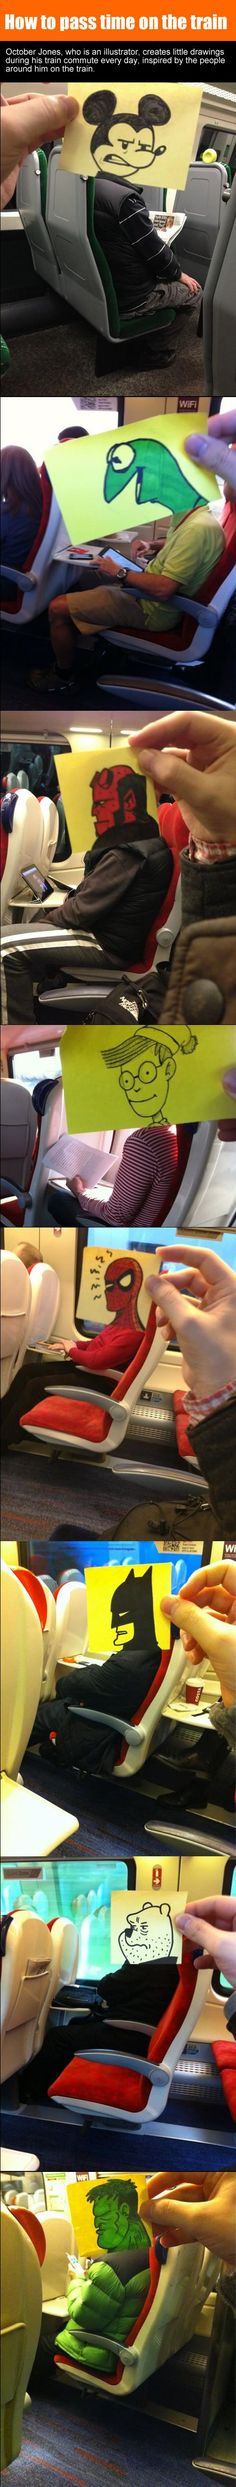 Illustrator Made Funny Doodles During His Daily Train Commute.